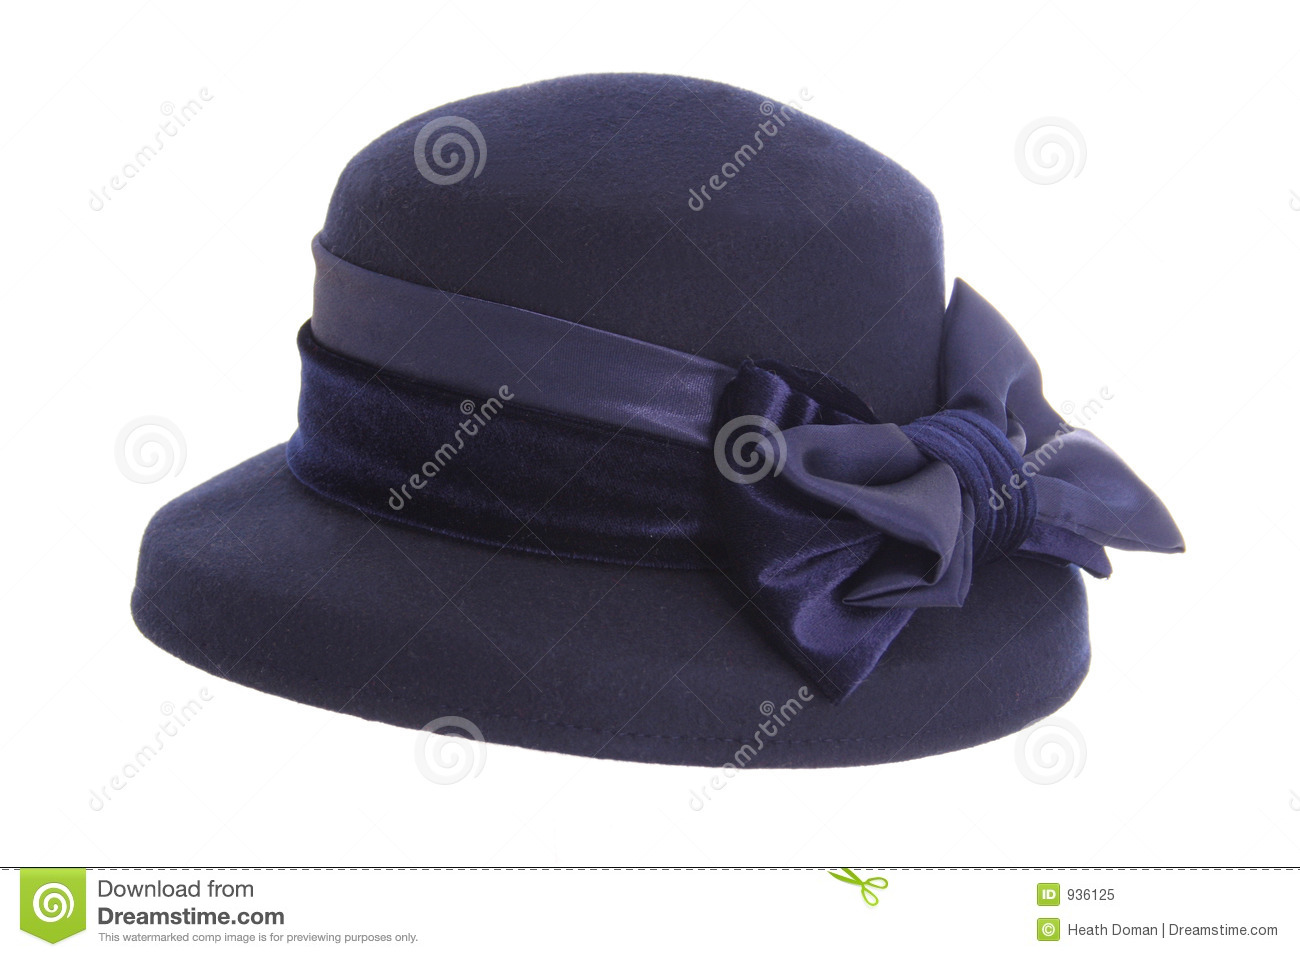 ladies blue hat stock image image of costume woman class 936125